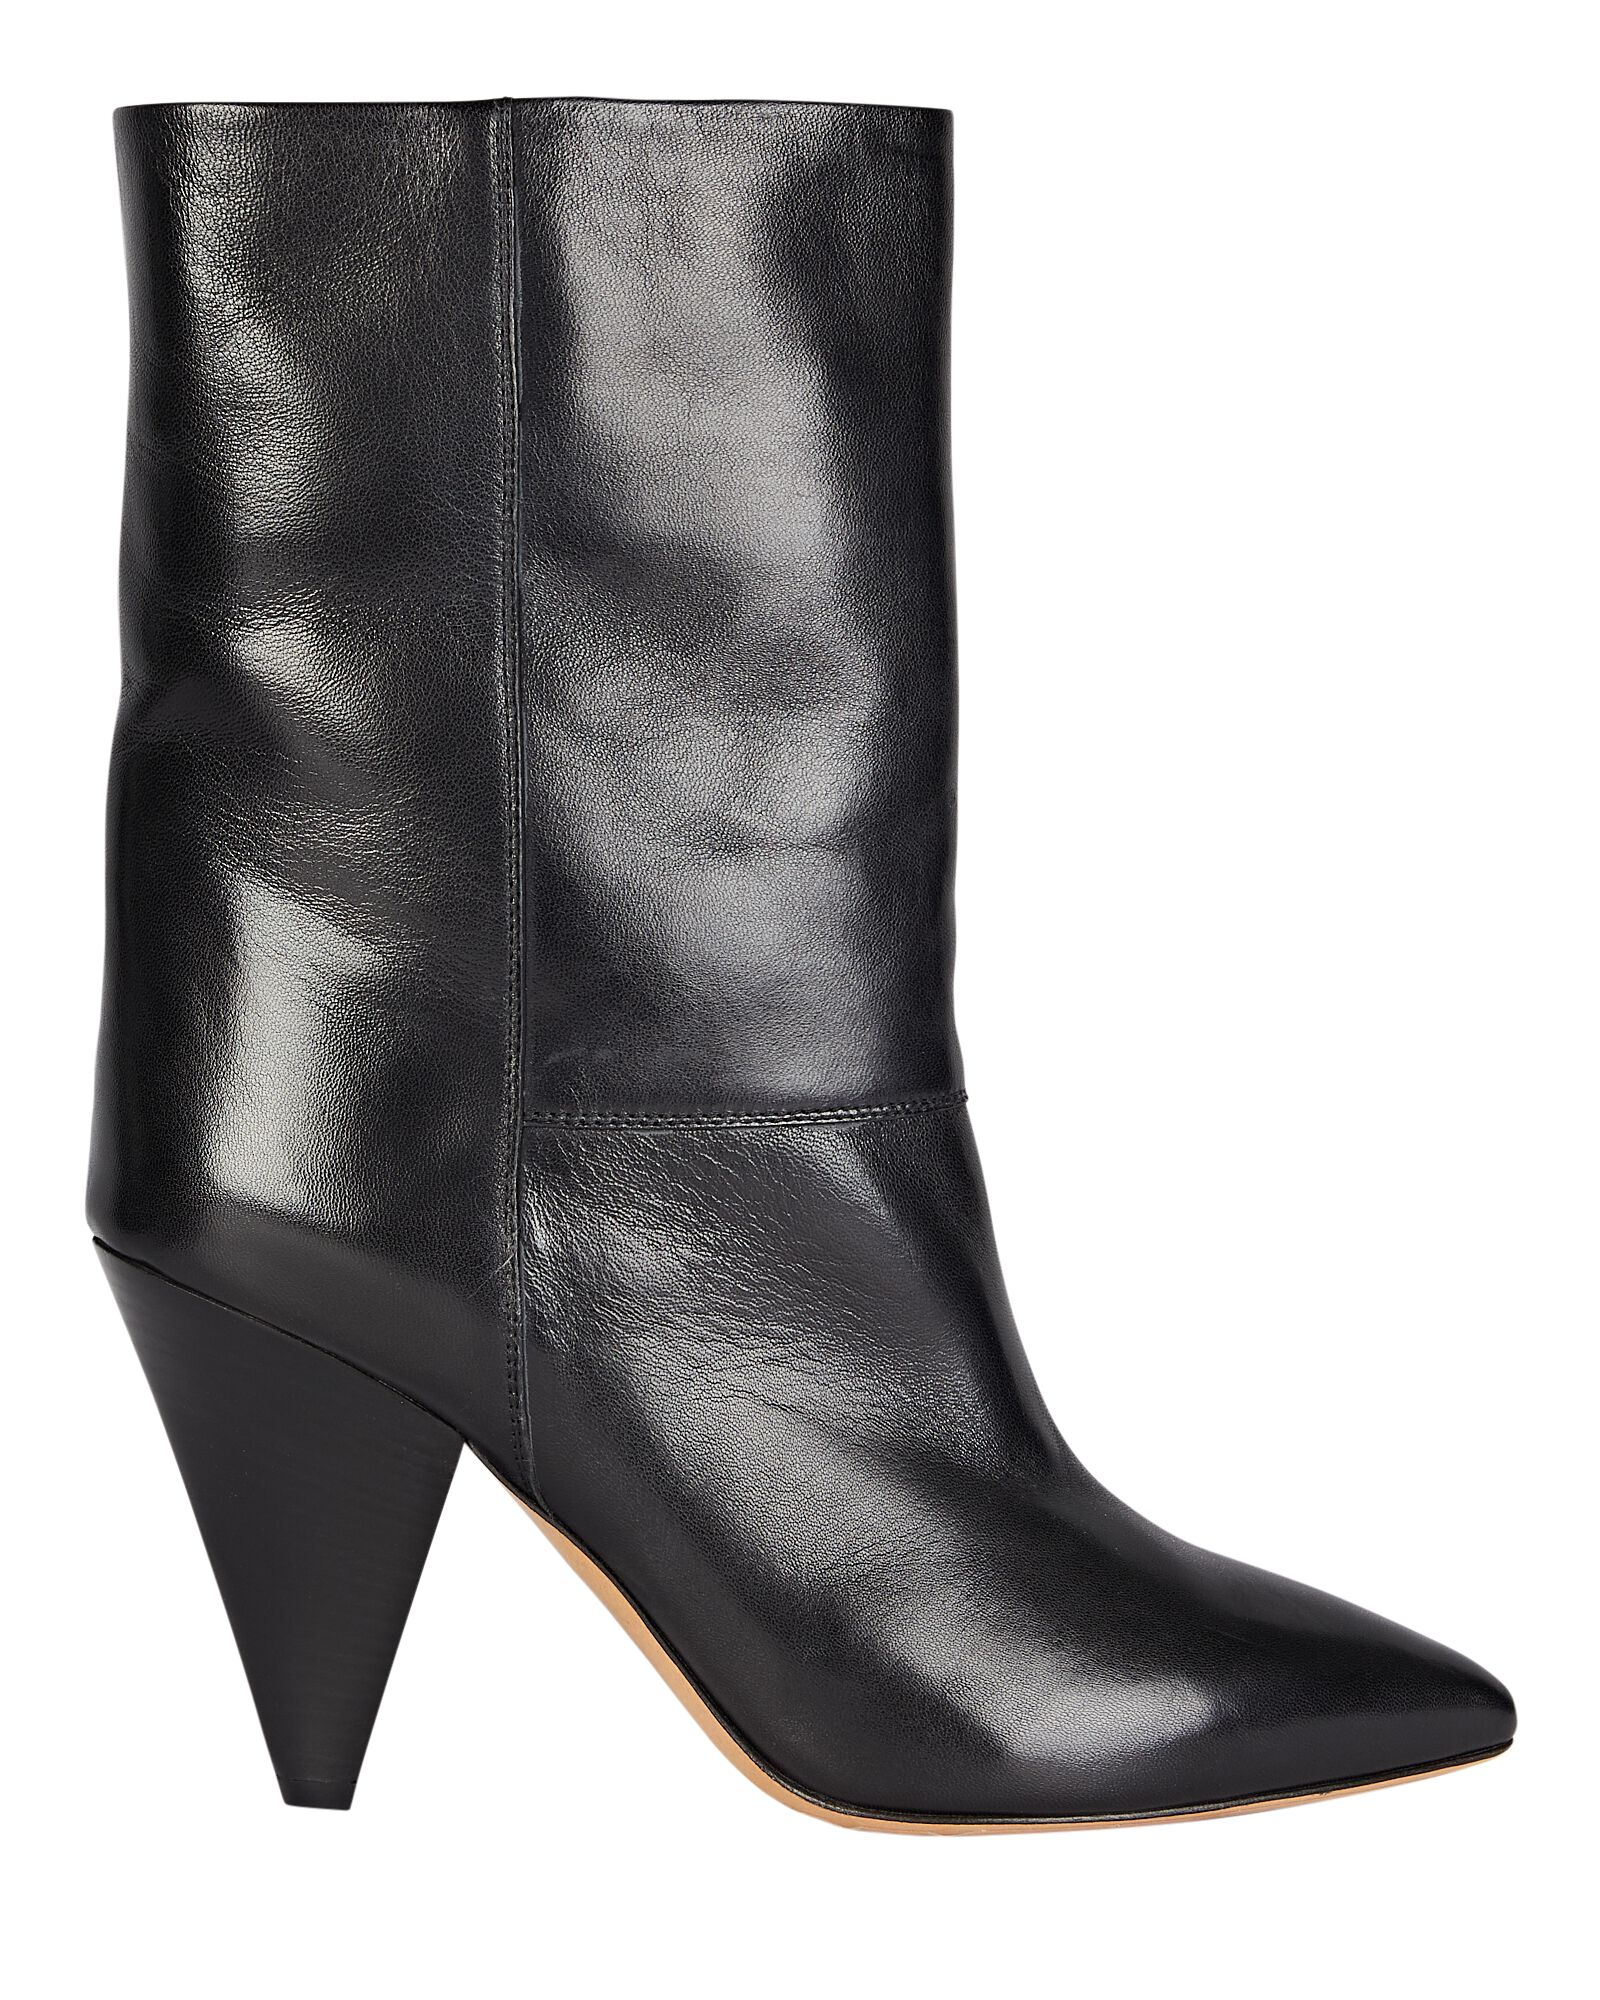 Locky Leather Ankle Boots, BLACK, hi-res